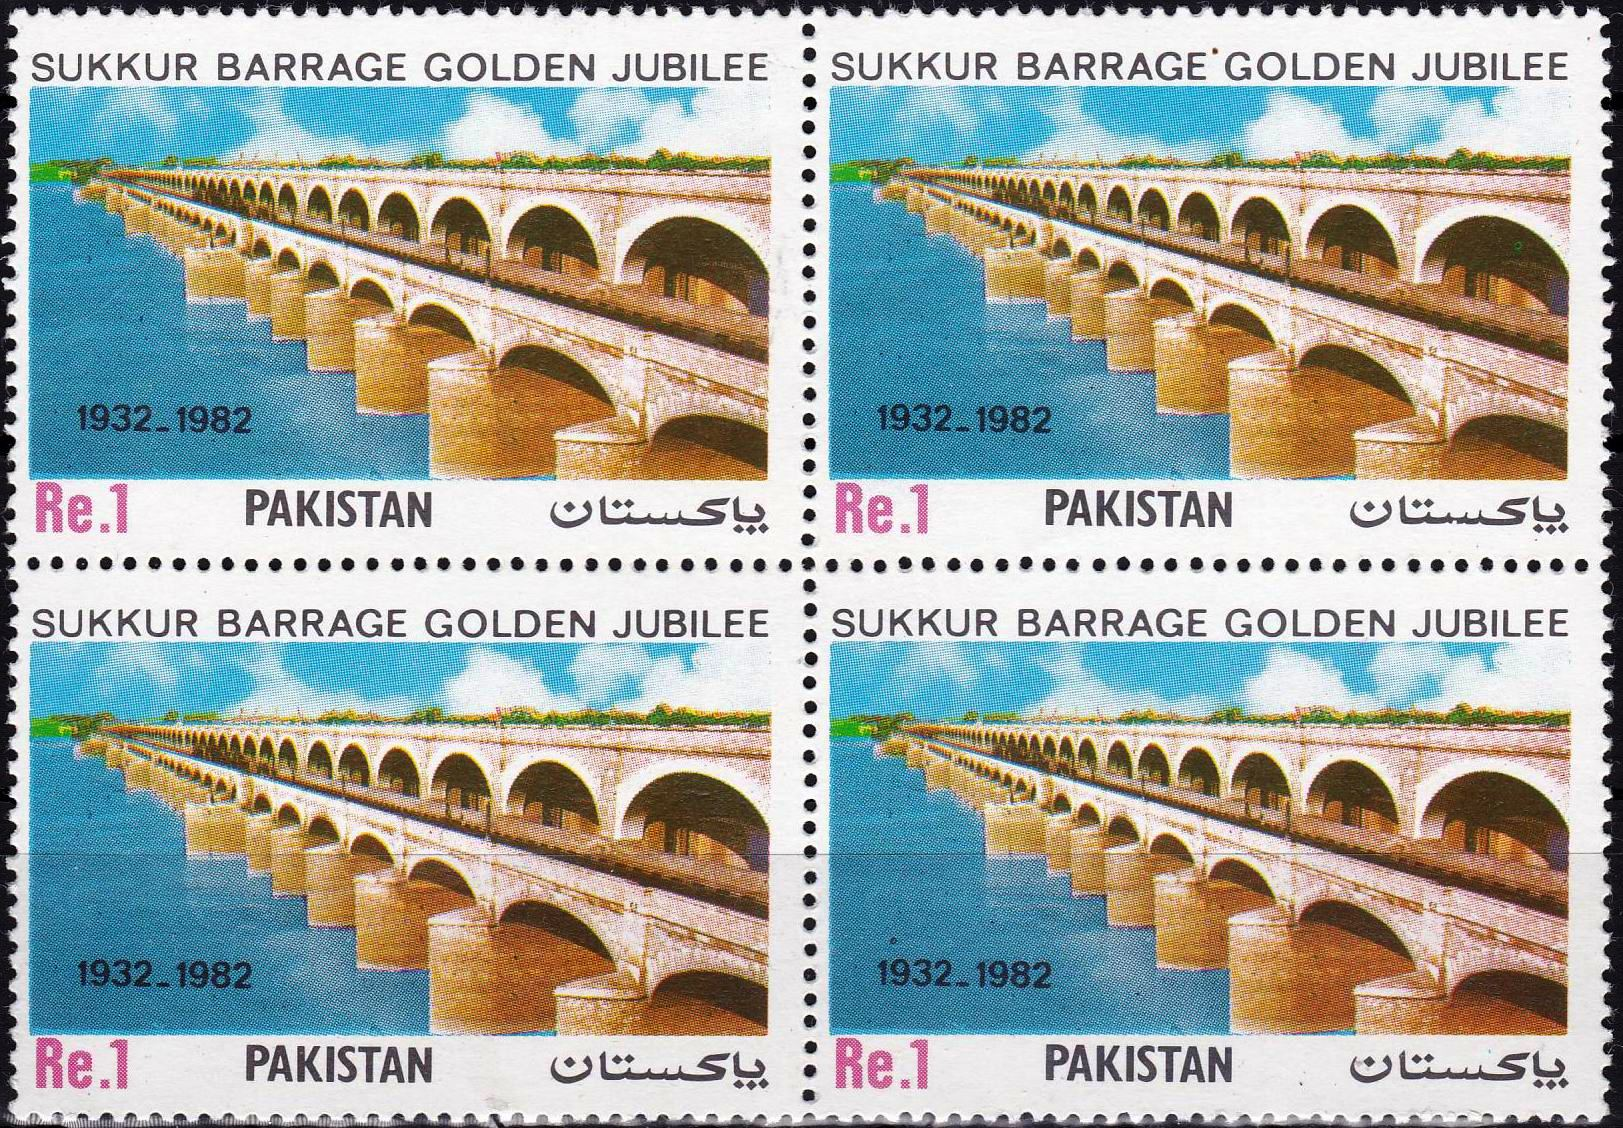 Pakistan Stamps 1982 Sukkur Barrage